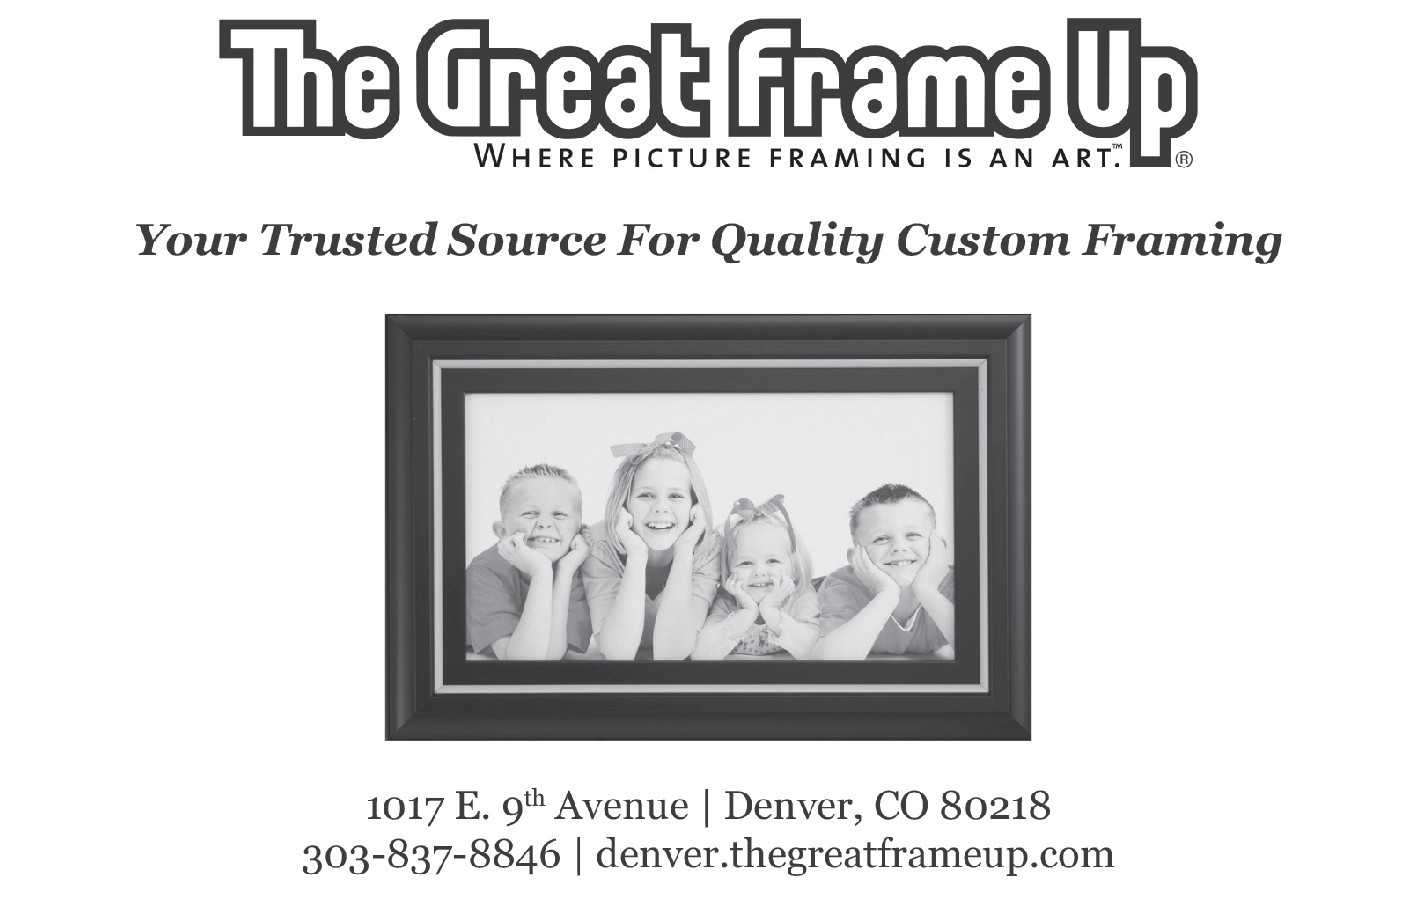 Local news, information and sports from Westminster, Colorado ...